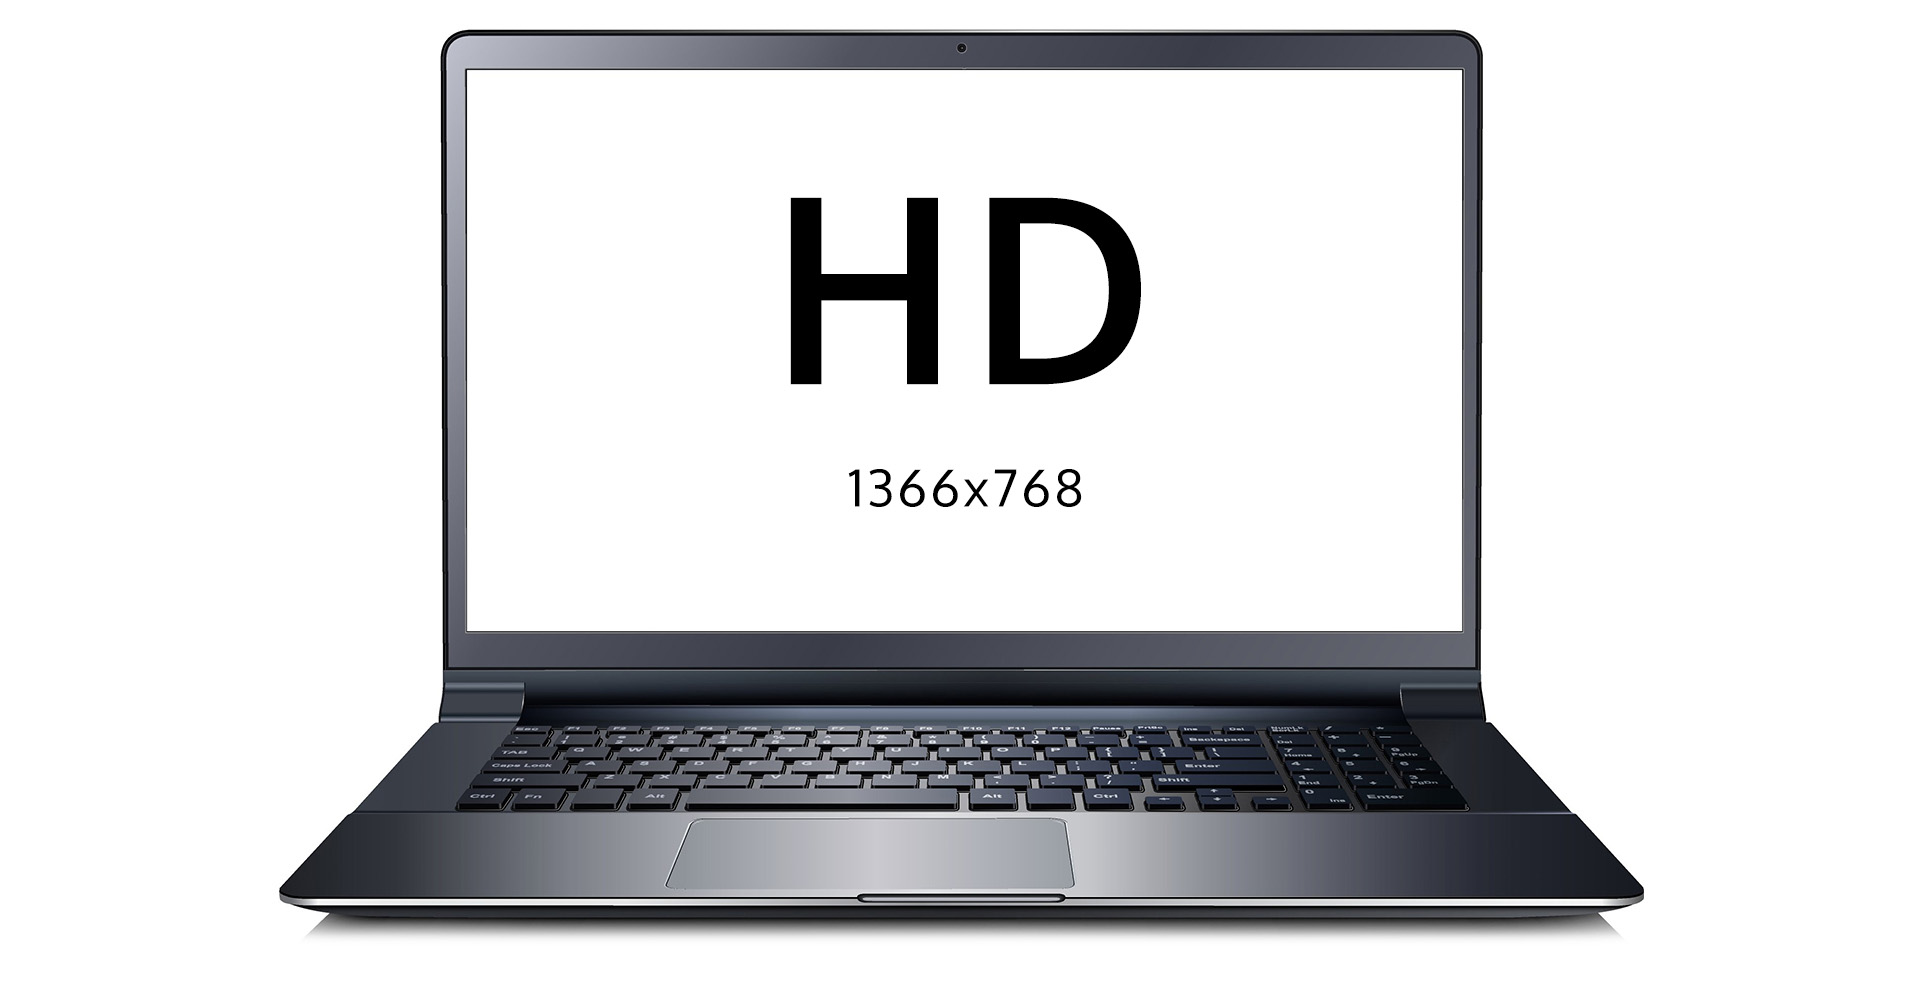 Dell Latitude 5580 i3-7100U 4GB 500GB WIN10Pro                             HD 1366x768 raiška